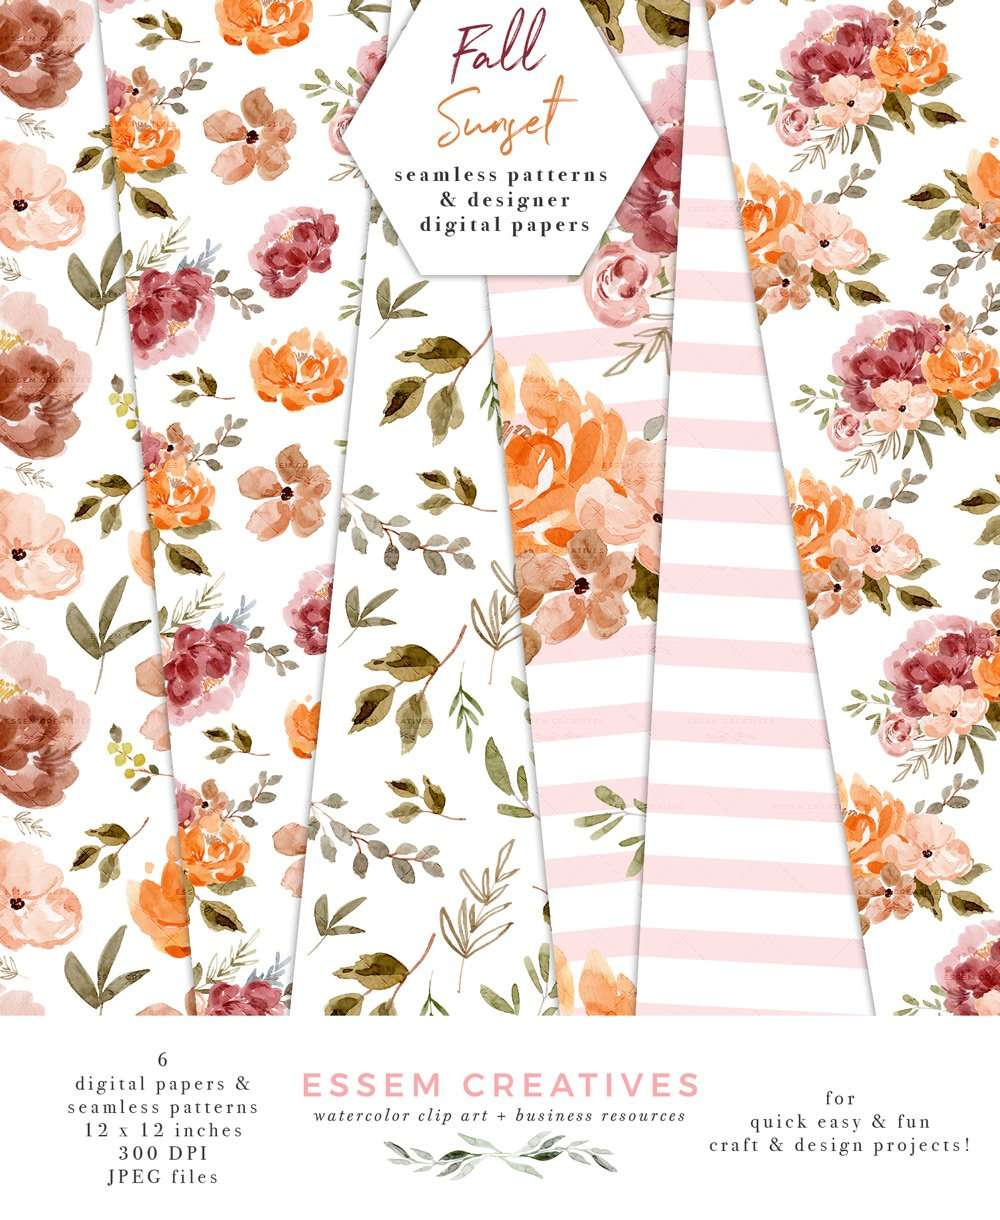 Fall Floral Digital Papers Dusty Orange Rust Flower Patterns